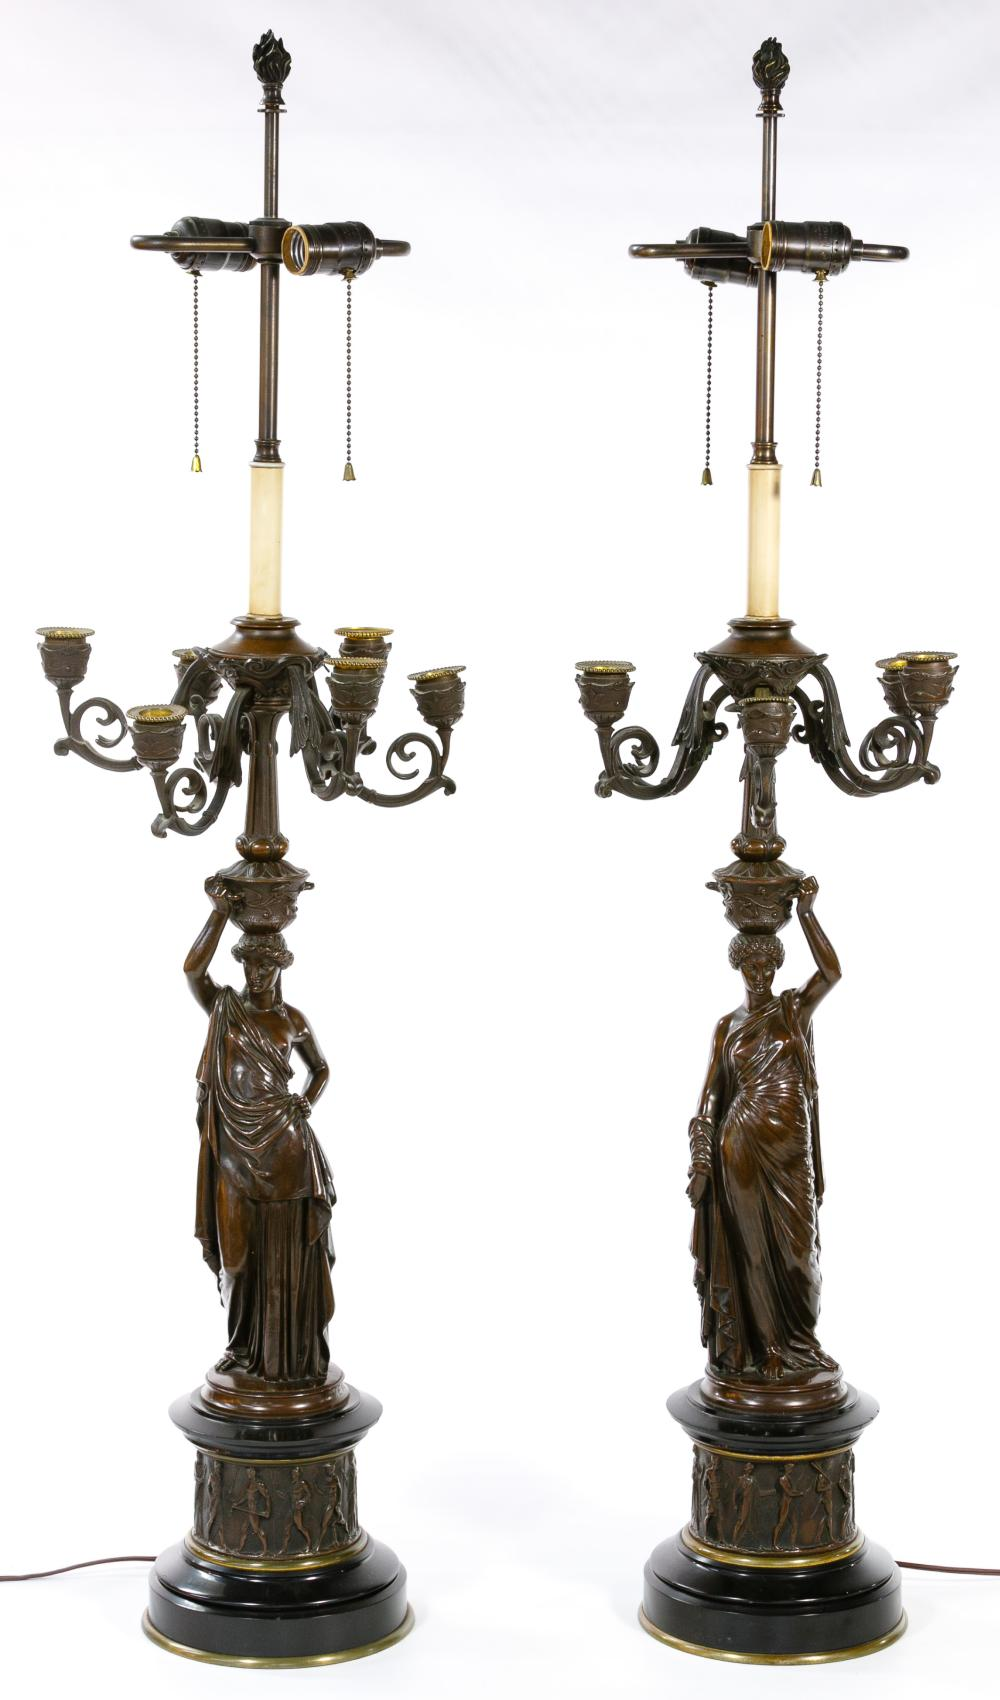 (After) Louis Valentine Elias Robert (French, 1821-1874) Bronze Figural Table Lamps